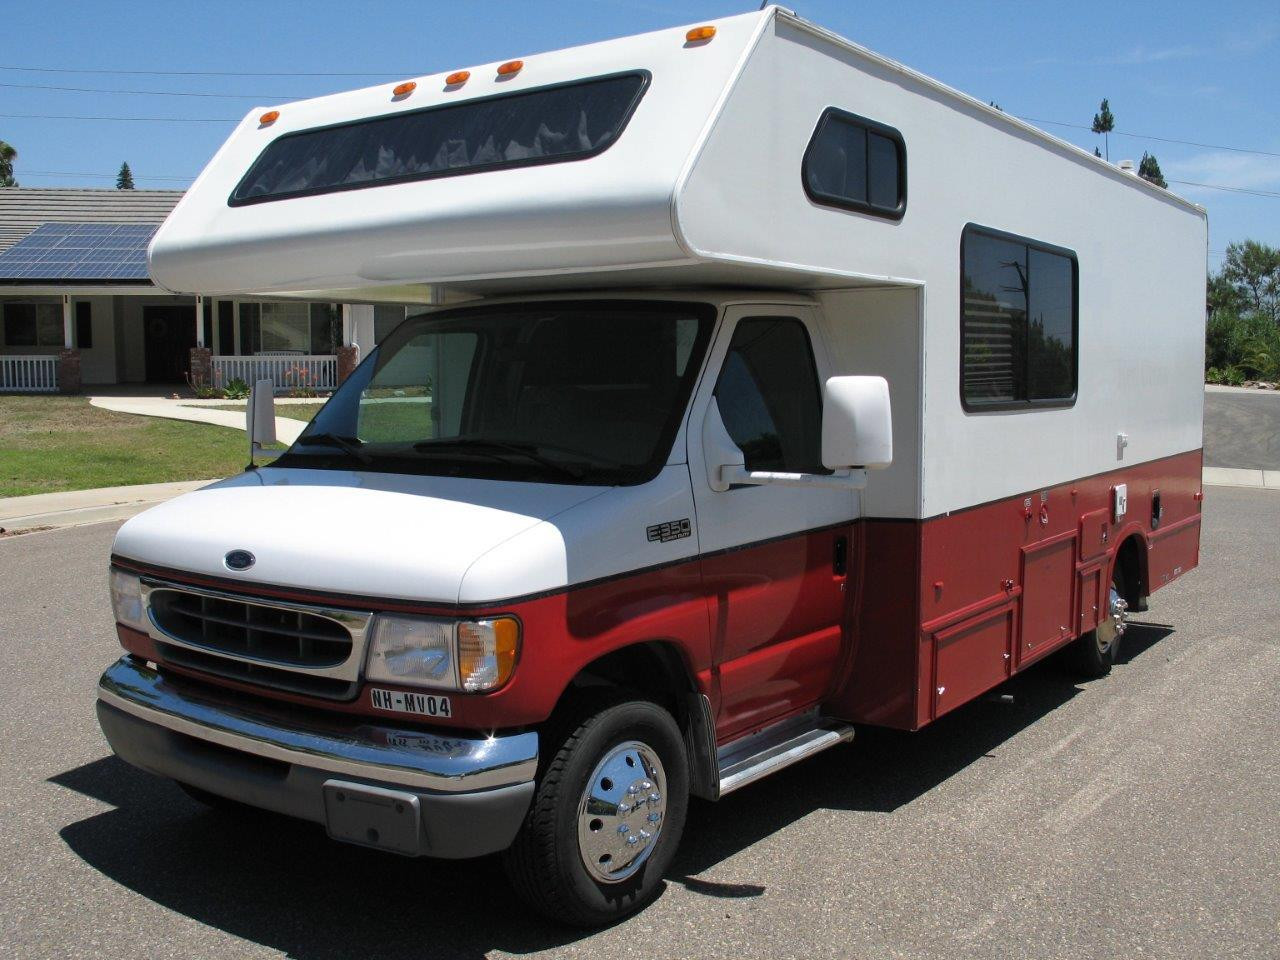 Used Class C Motorhomes For Sale - RV Trader